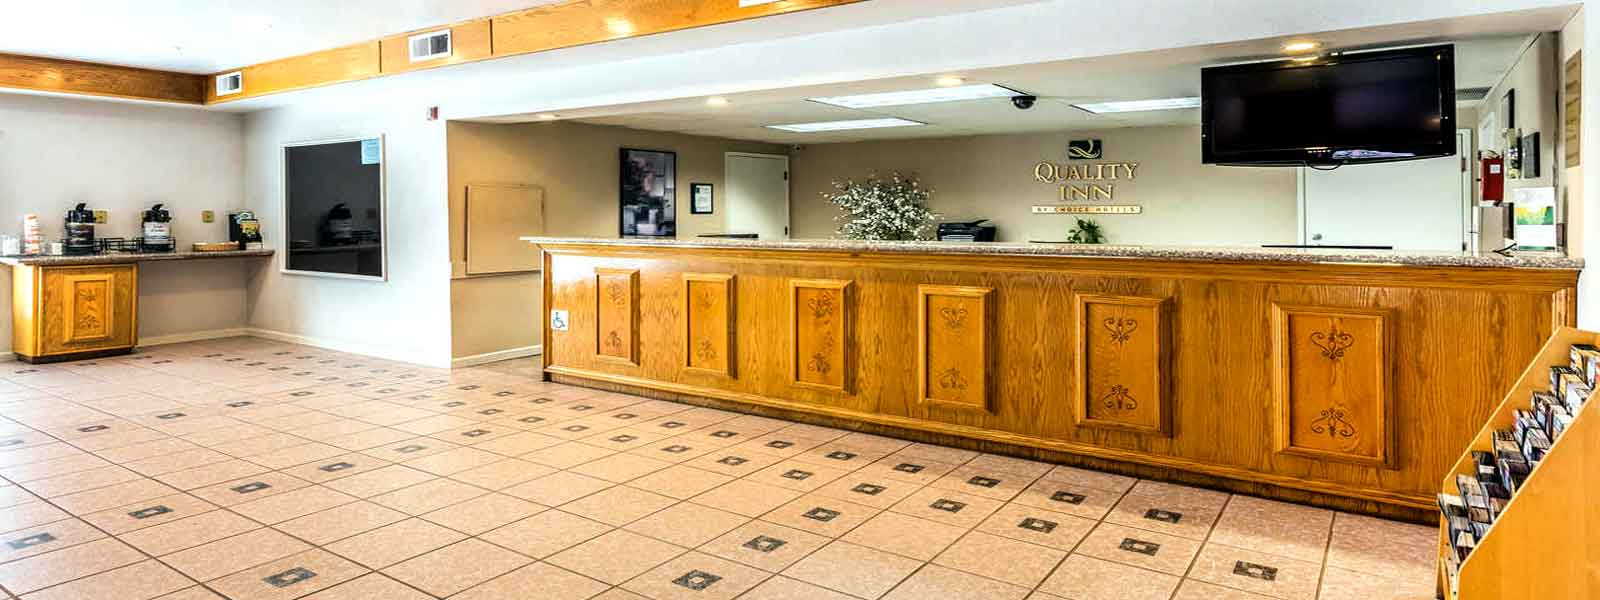 Discount Budget Cheap Affordable Hotels Motels Quality Inn Downtown State University